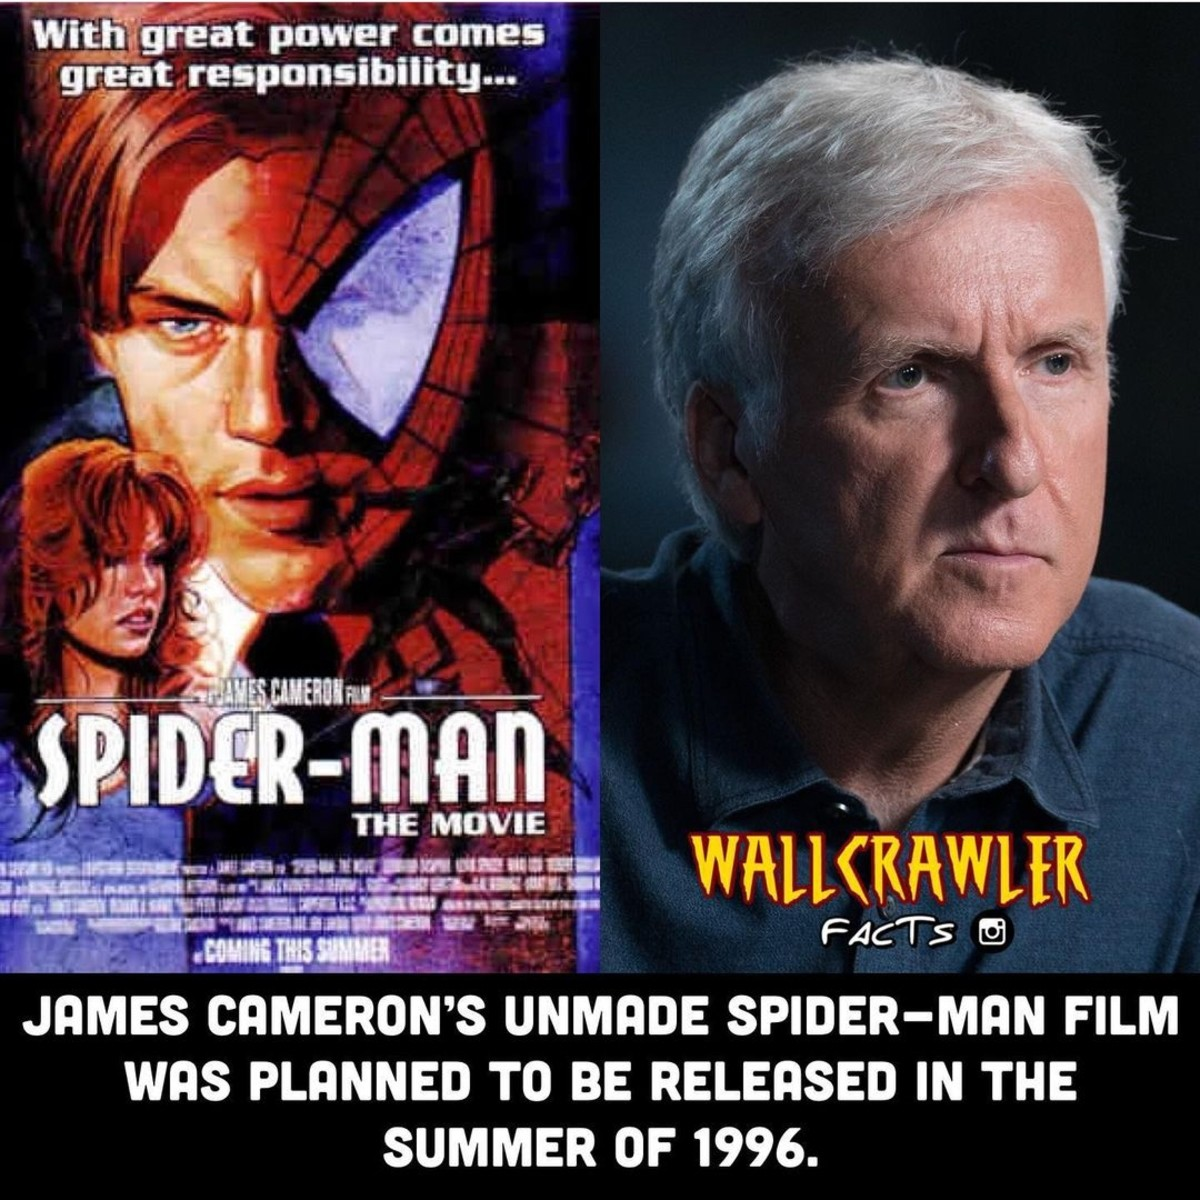 Unreleased Spider-Man Movie.. .. either that's leo in that movie cover, or the man depicted has aged 60 years instead of the natural 24 years that have passed...